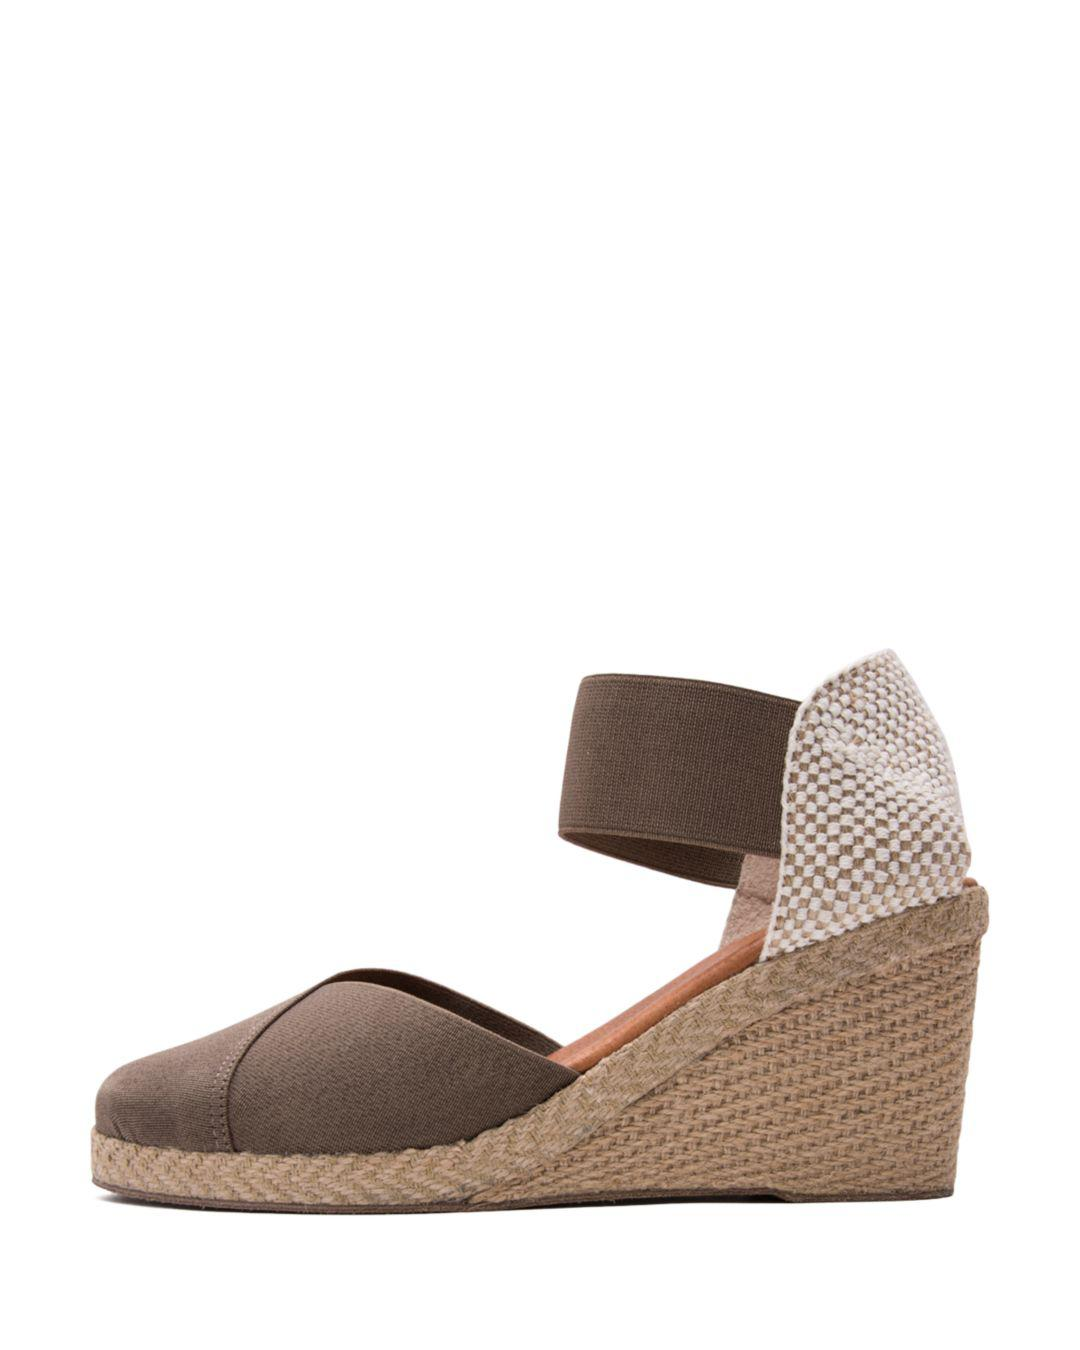 a9d18171354 Lyst - Andre Assous Women's Anouka Mid Wedge Espadrilles in Brown